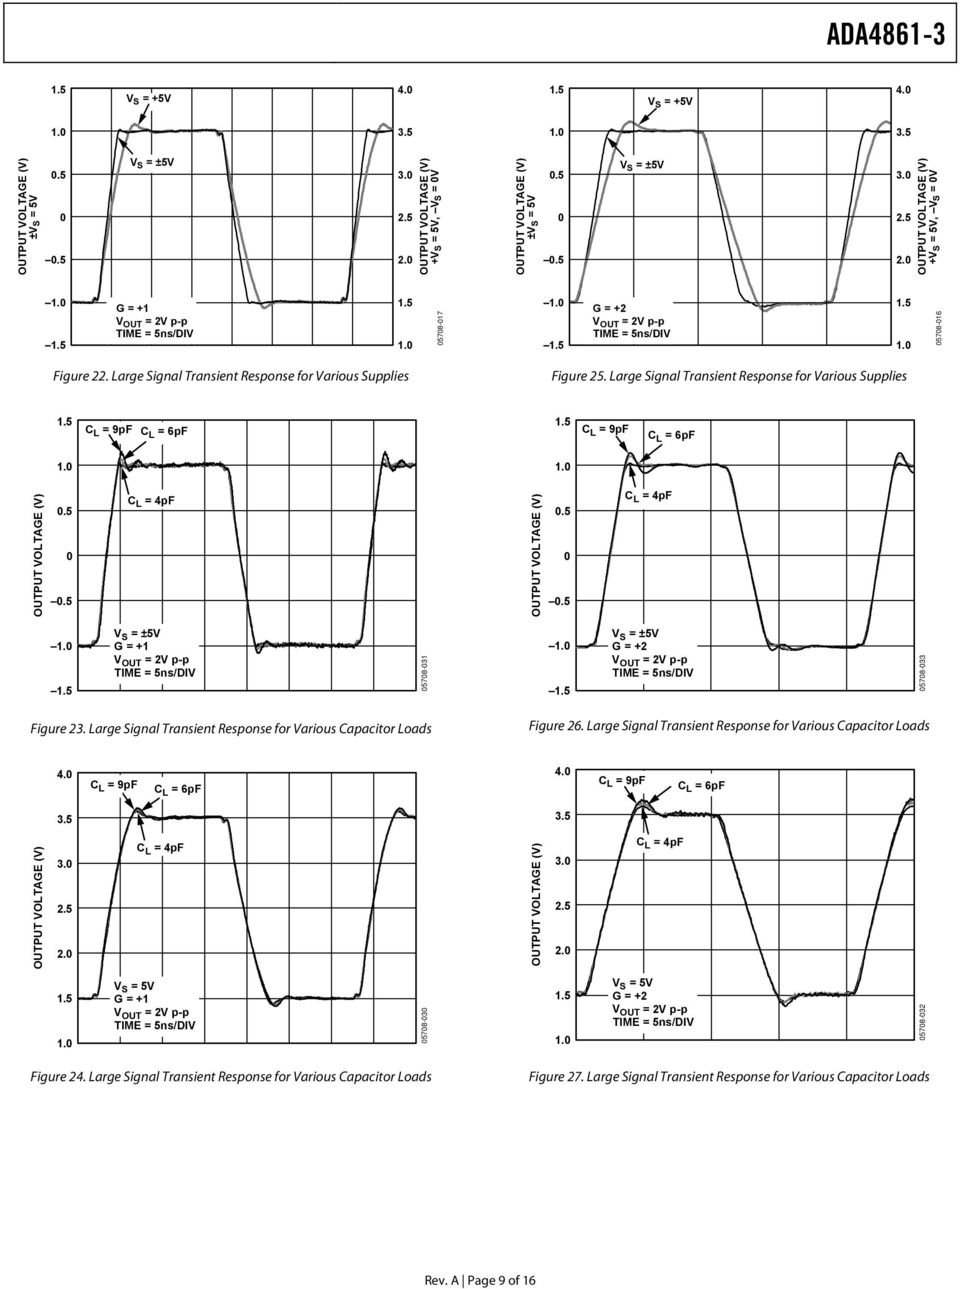 .5 578-33 Figure 23. Large Signal Transient Response for Various Capacitor Loads Figure 26. Large Signal Transient Response for Various Capacitor Loads 4. C L = 9pF C L = 6pF 4.